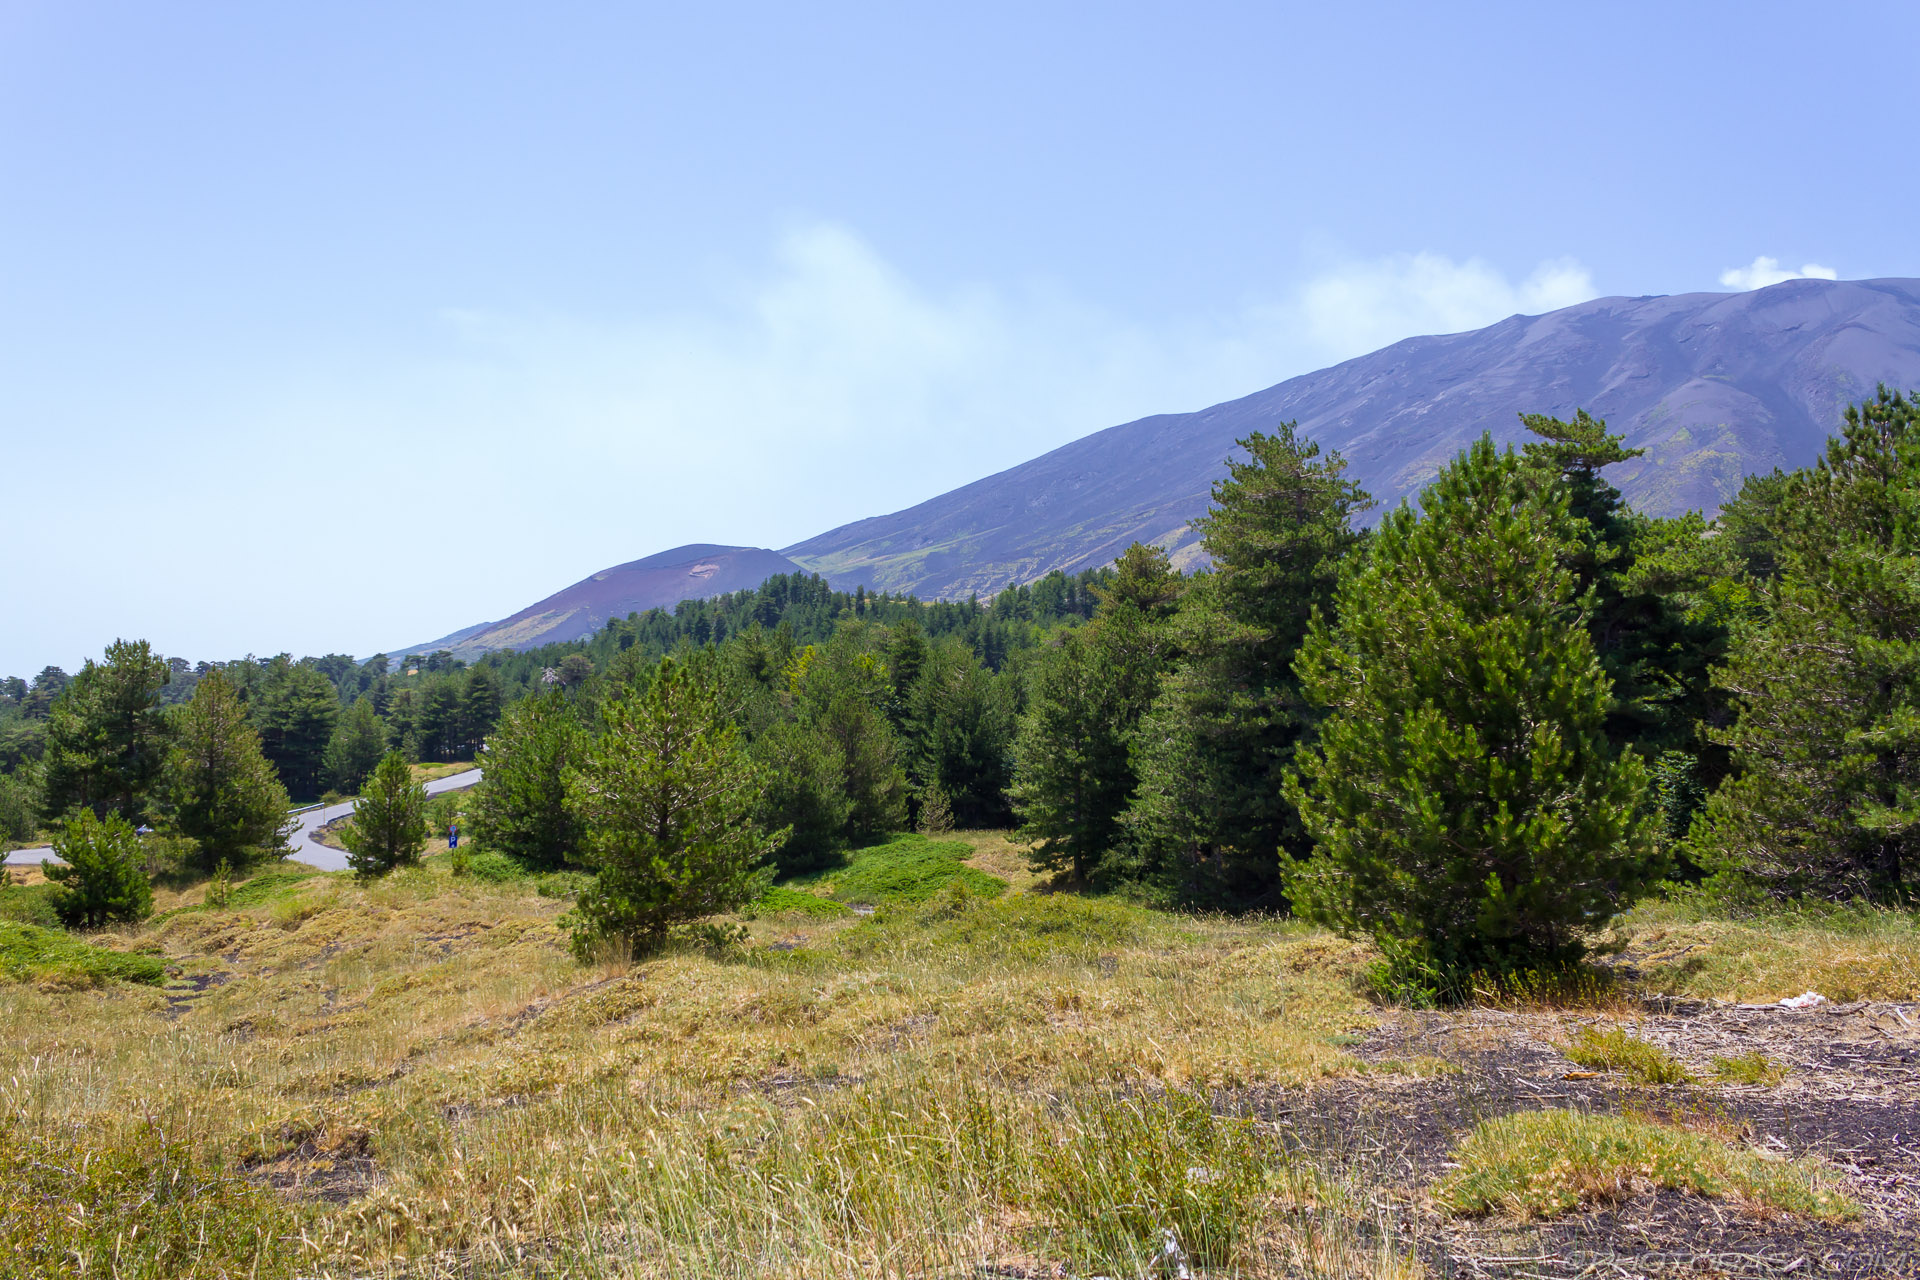 https://photorasa.com/mount-etna/etna-trees/